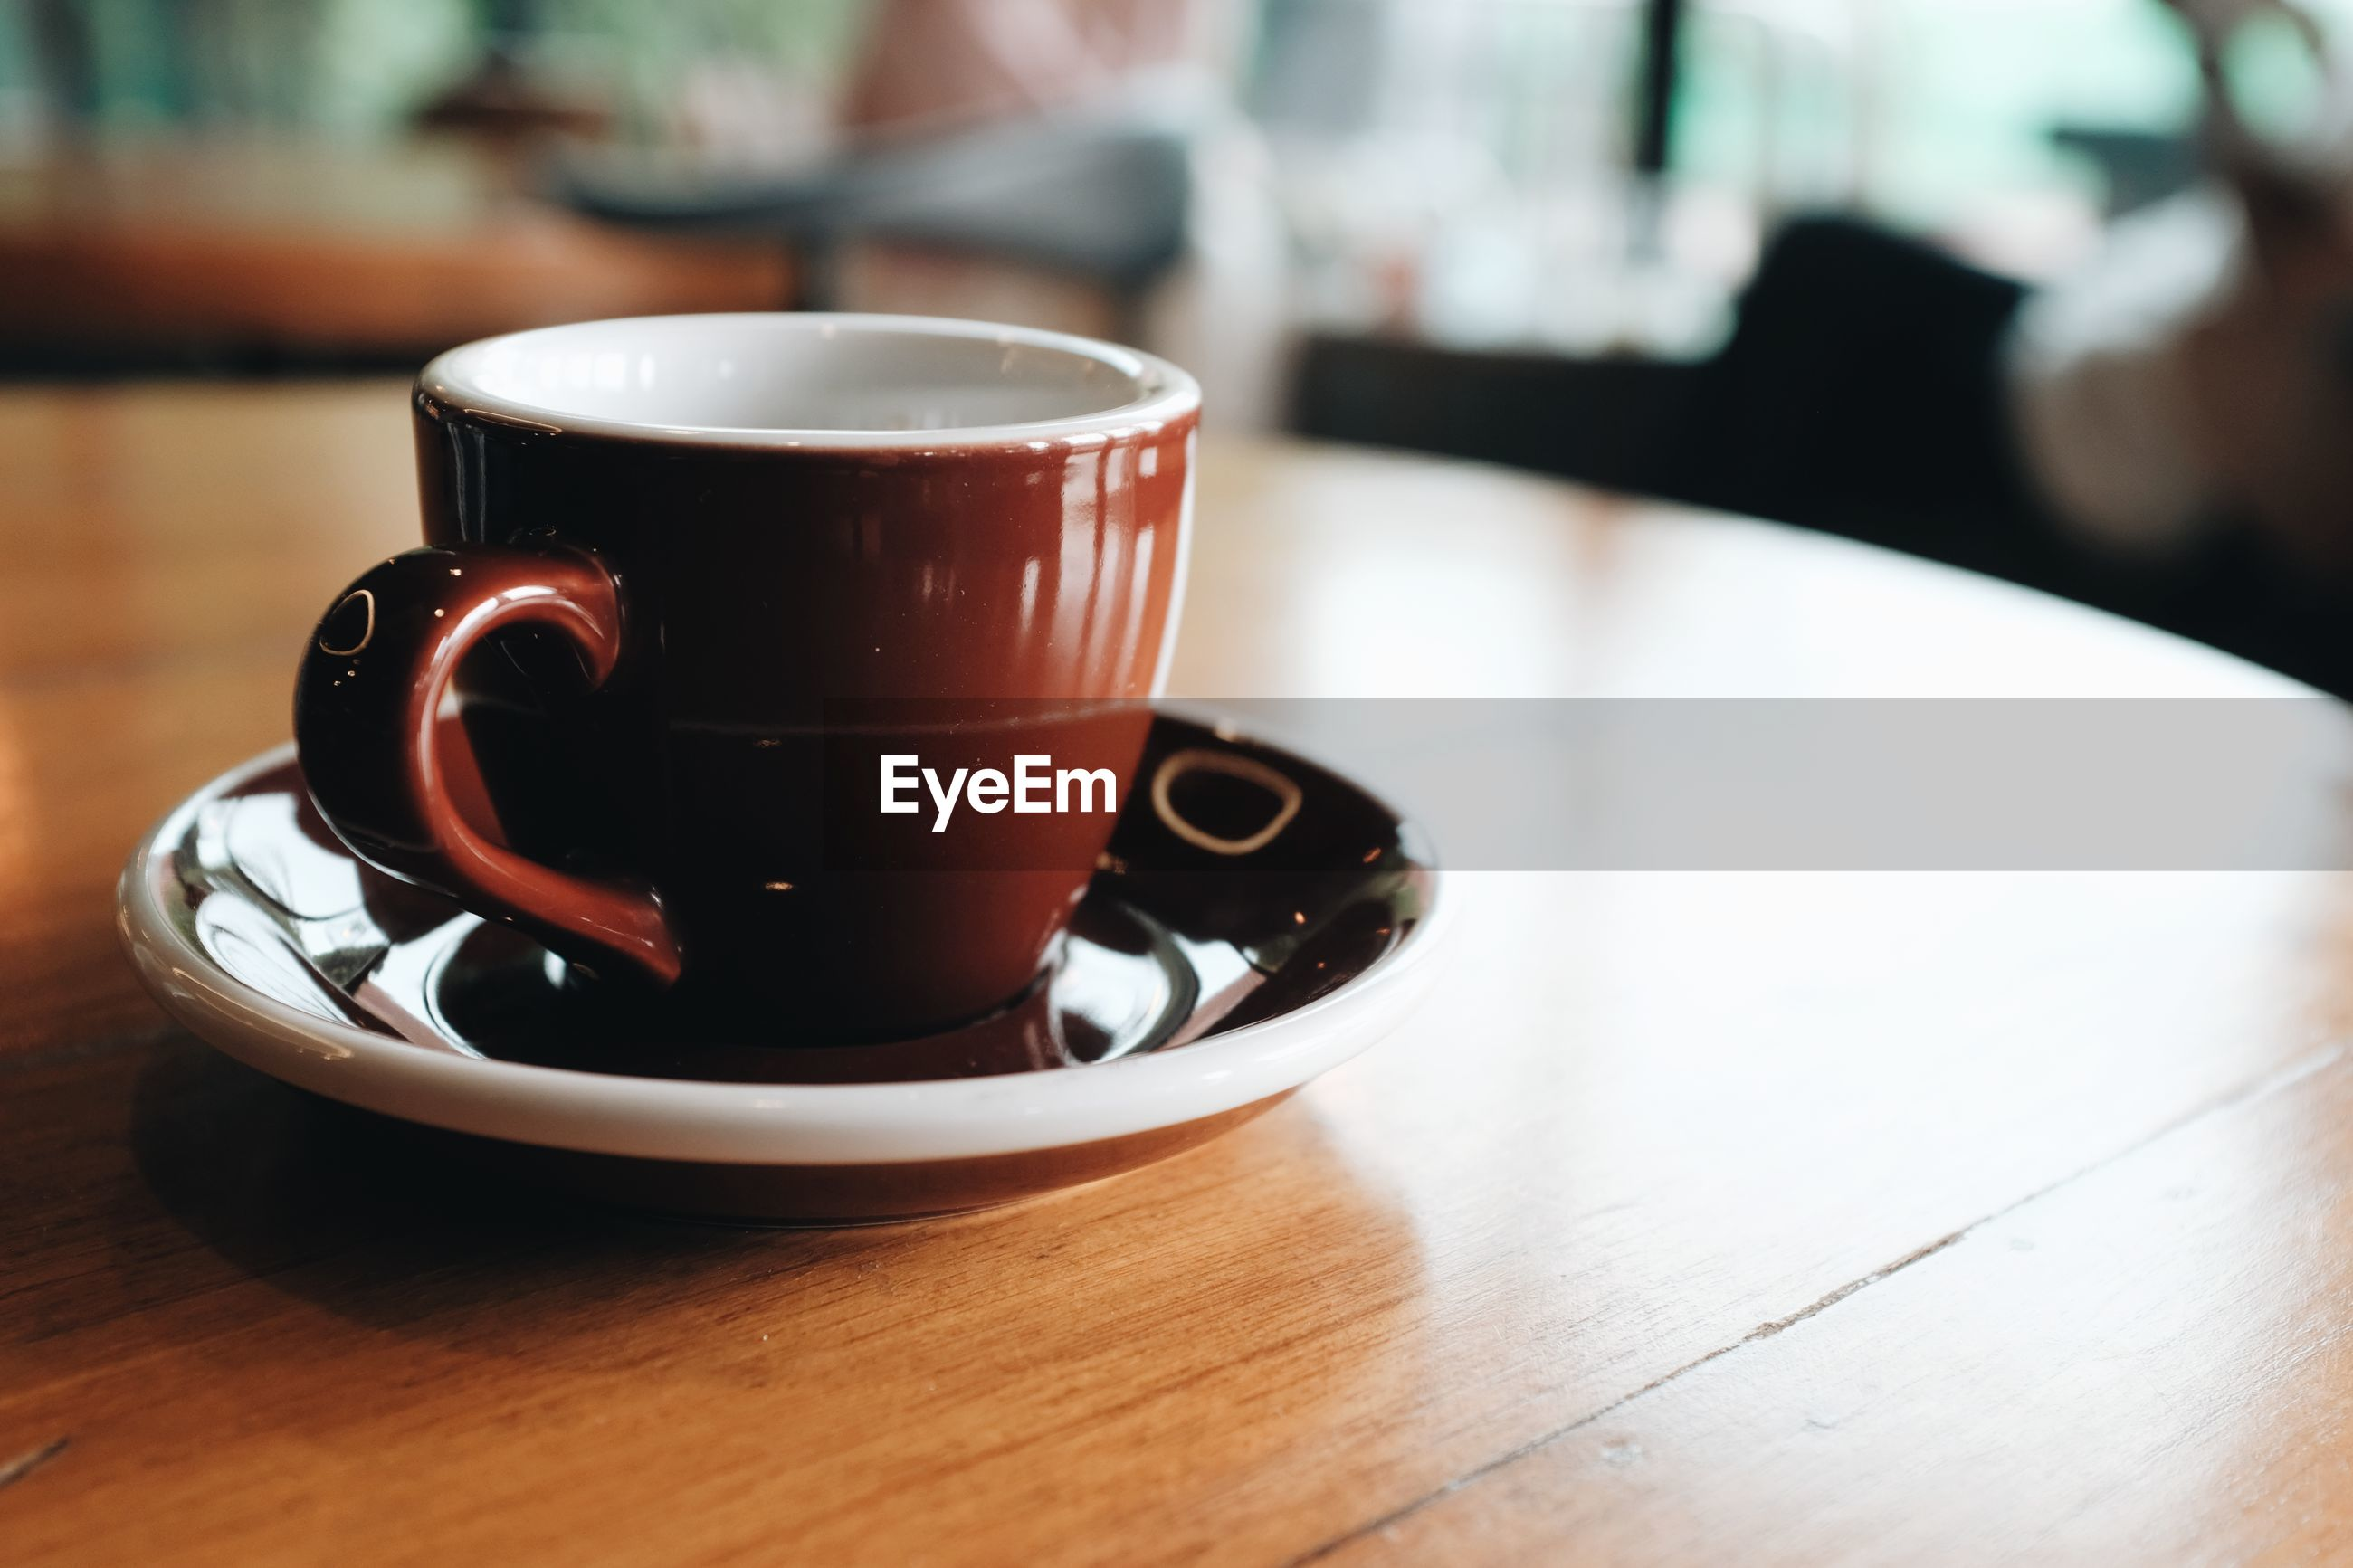 Close up view of a brown coffee cup on a wooden table in a coffee shop